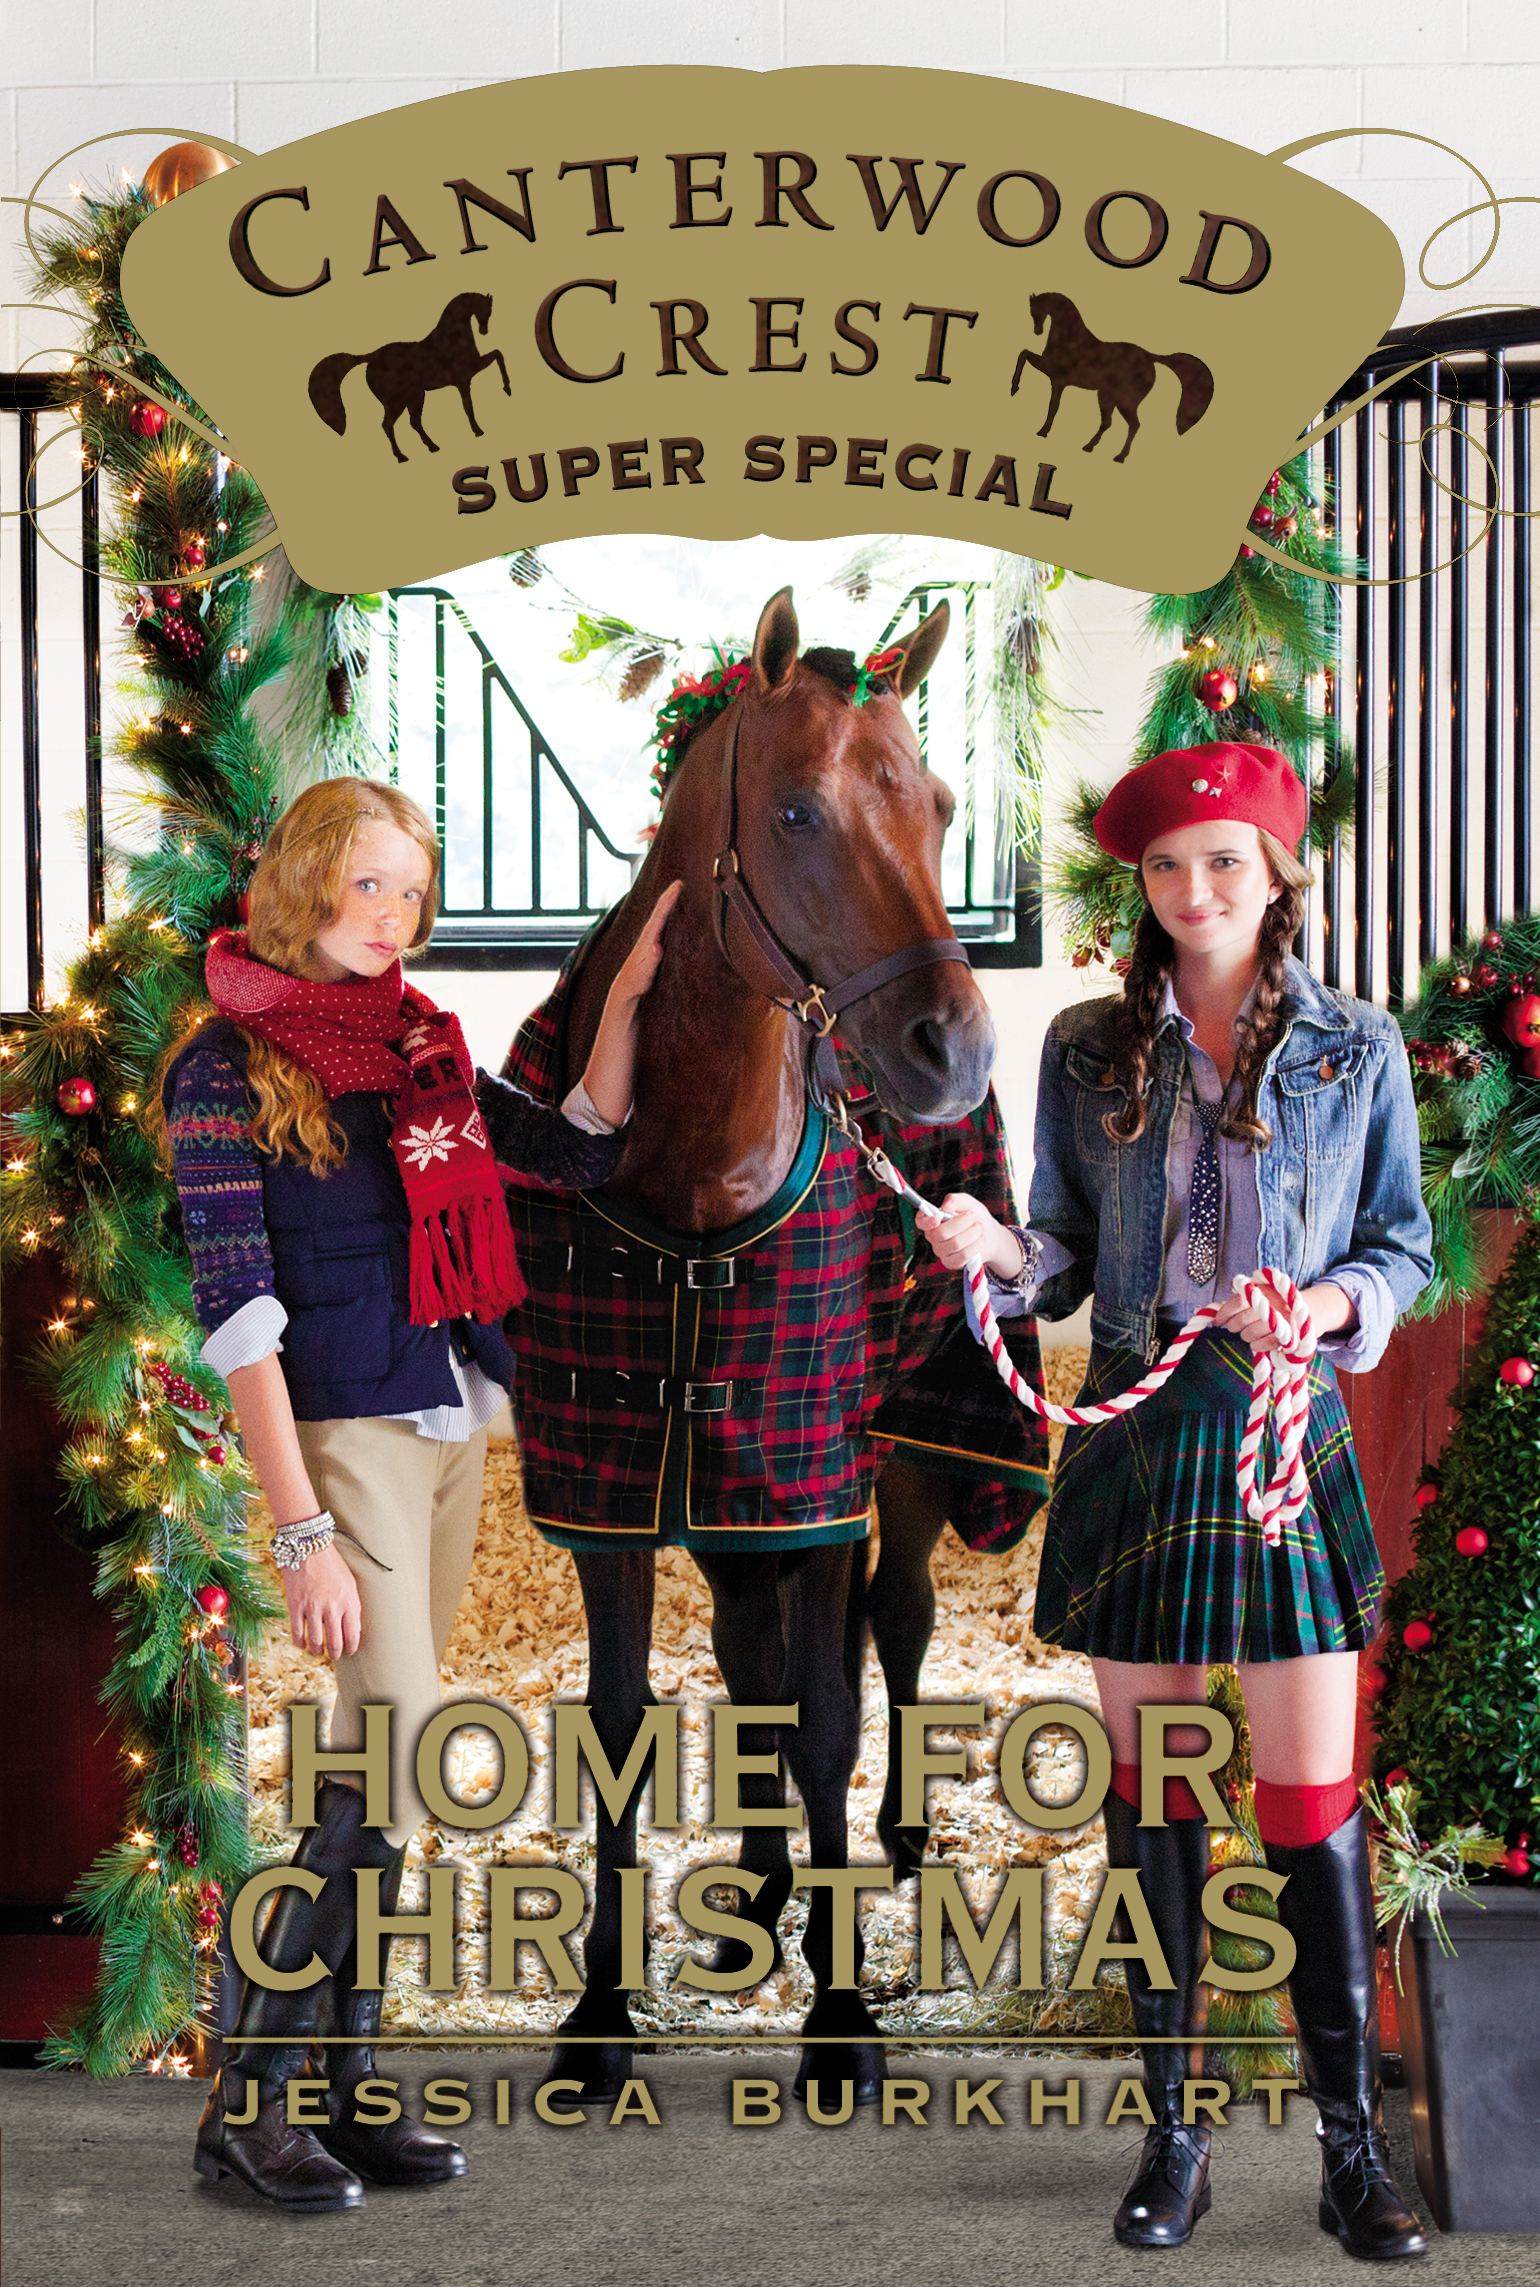 Home By Christmas.Home For Christmas Book By Jessica Burkhart Official